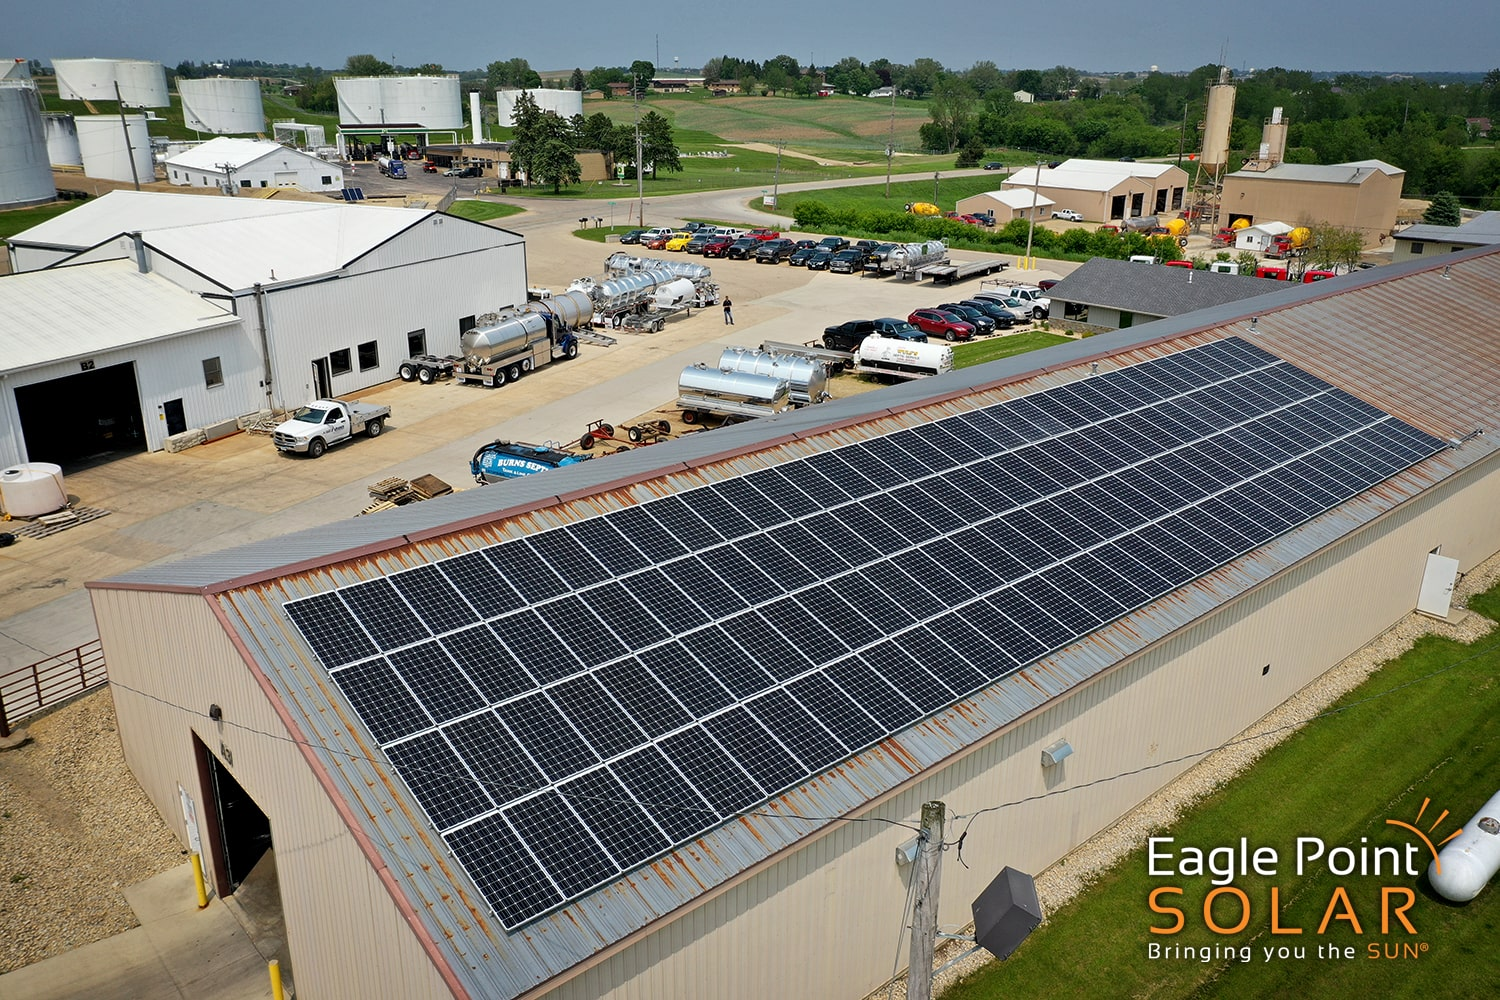 contact Eagle Point Solar if you are curious about incentives and the economic and environmental benefits of solar